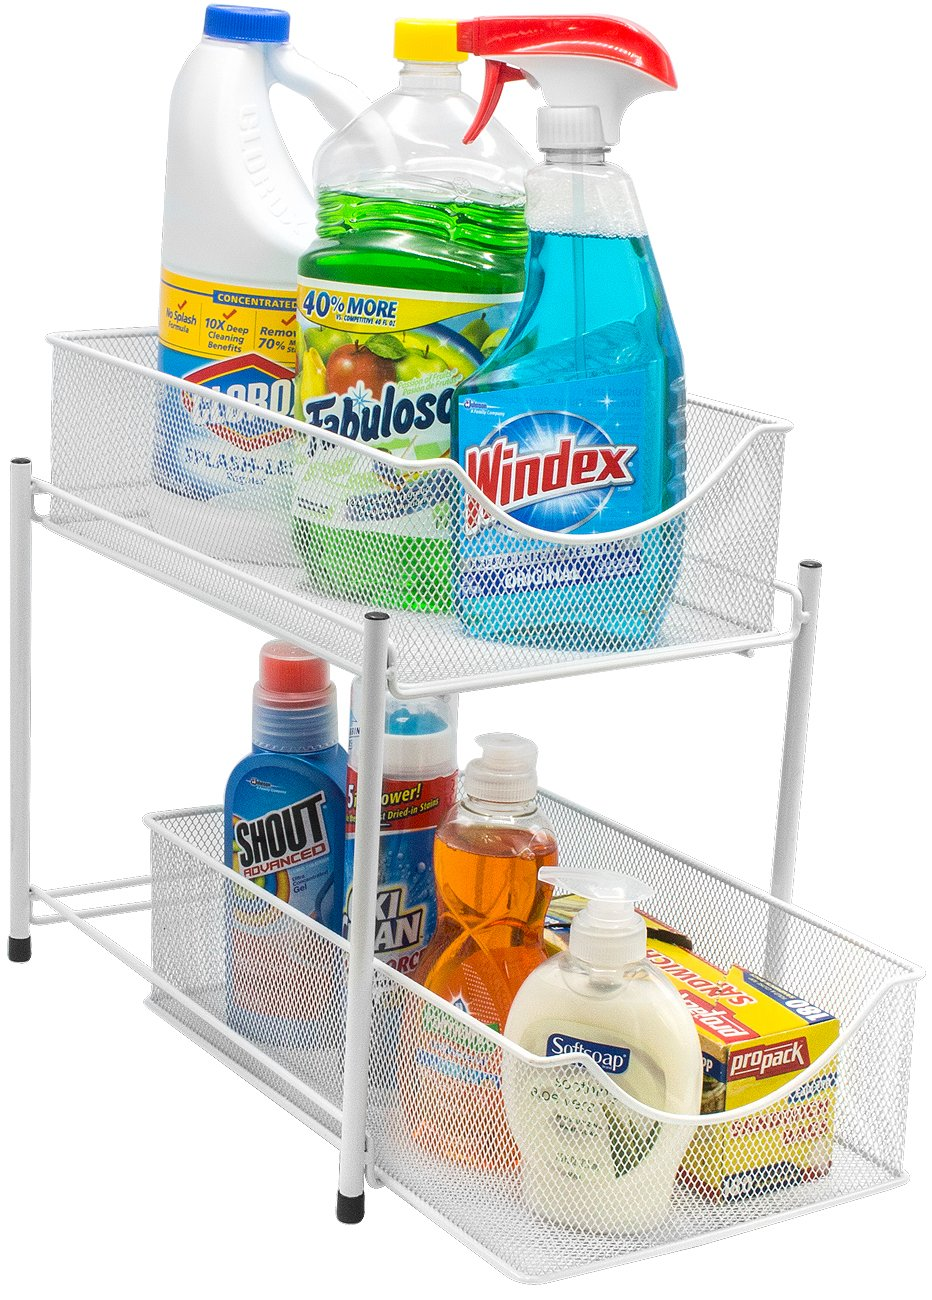 Sorbus 2 Tier Organizer Baskets with Mesh Sliding Drawers —Ideal Cabinet, Countertop, Pantry, Under The Sink, and Desktop Organizer for Bathroom, Kitchen, Office, etc.—Made of Steel (White)